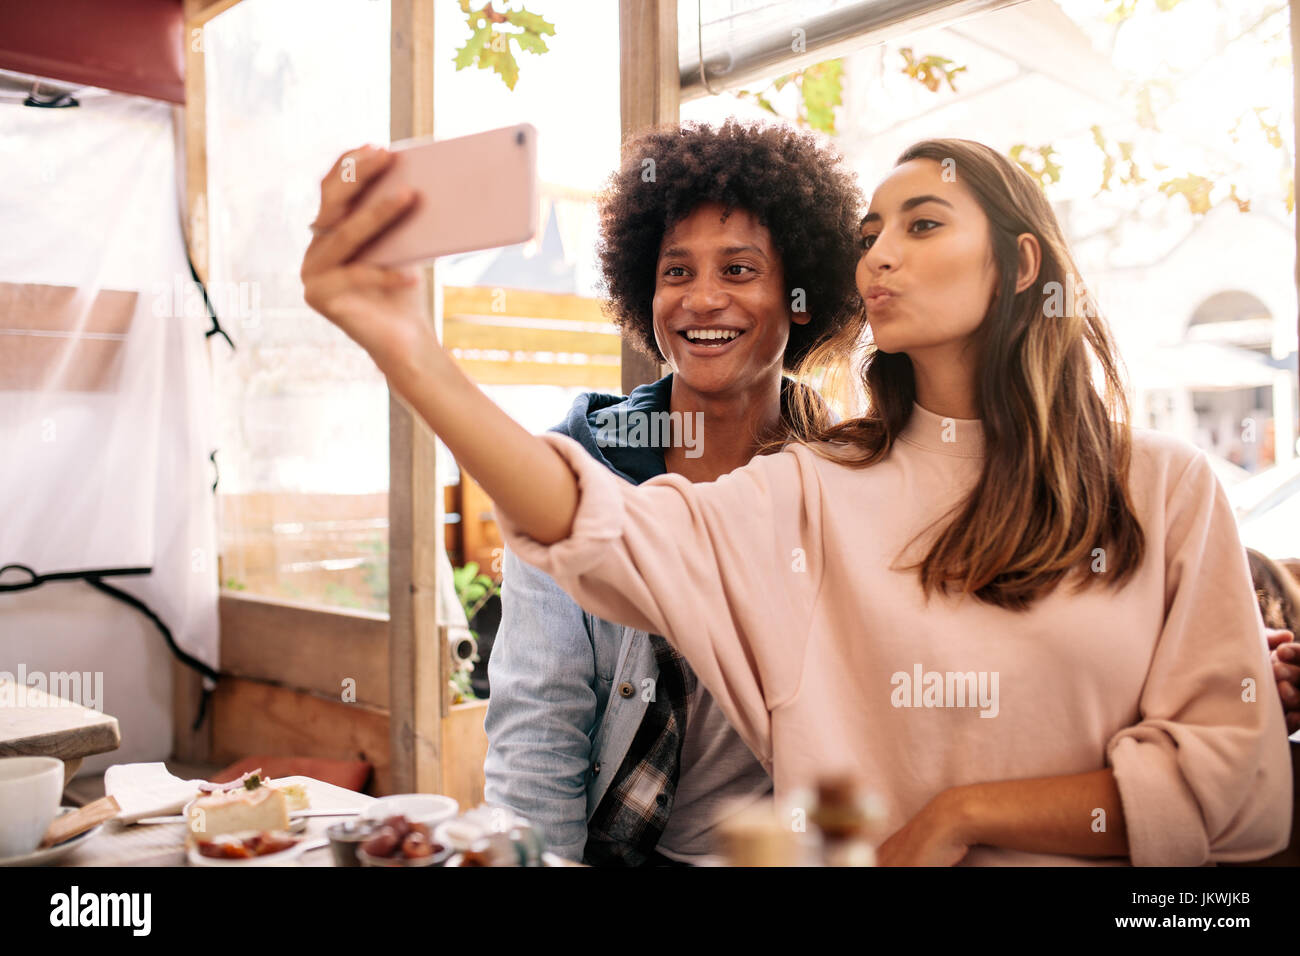 Young woman taking selfie with african man in cafeteria. Young couple looking at  smart phone in cafe. - Stock Image